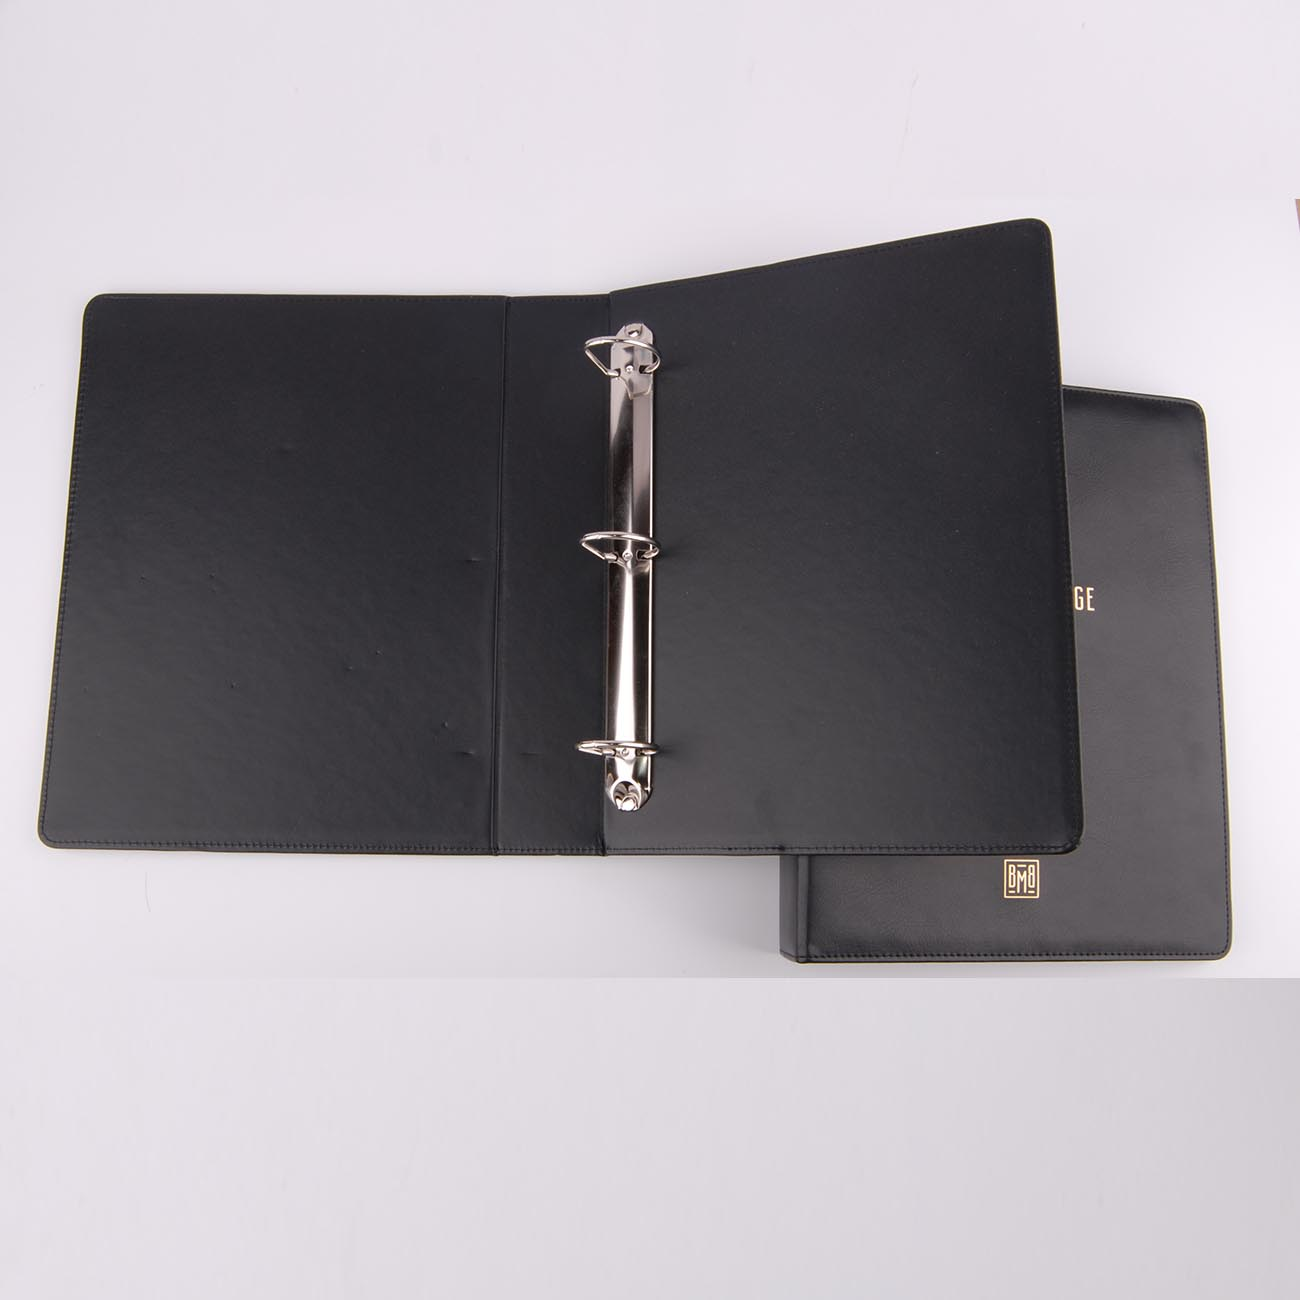 http://www.best-notebook.com/data/images/product/20170904114141_420.jpg